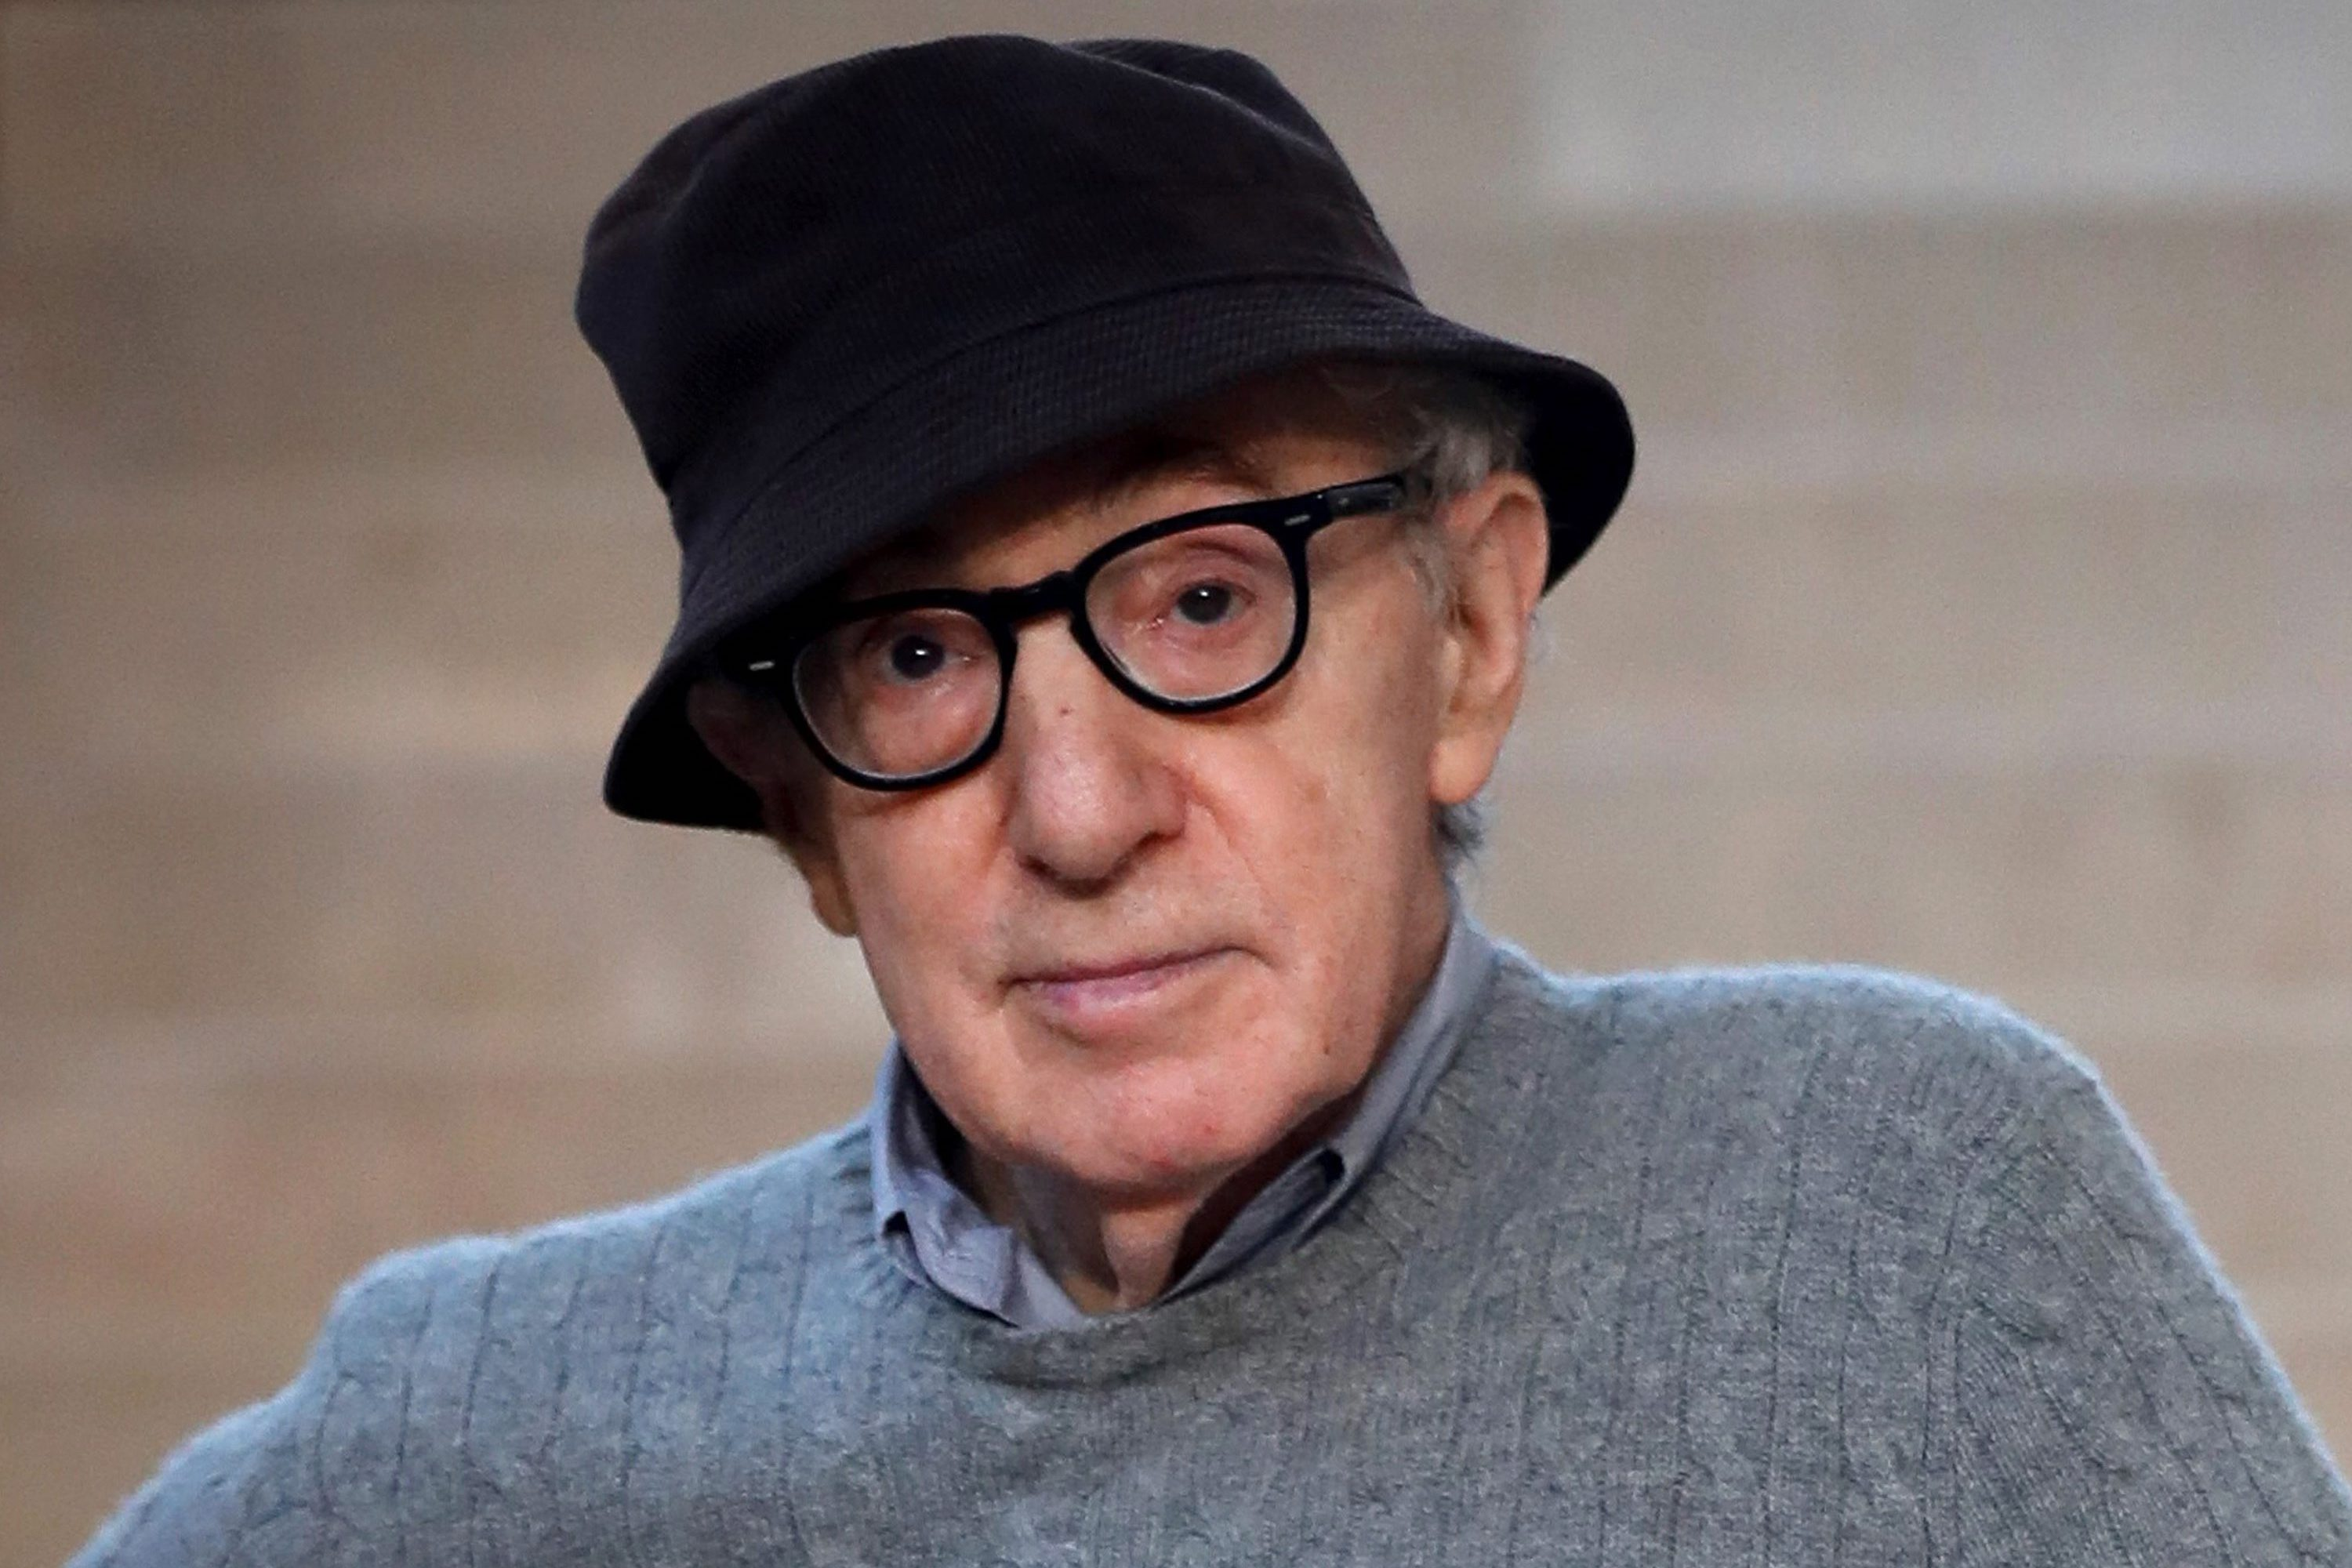 Woody Allen Responds To Dylan Farrow Allegations: 'I Ignore It'